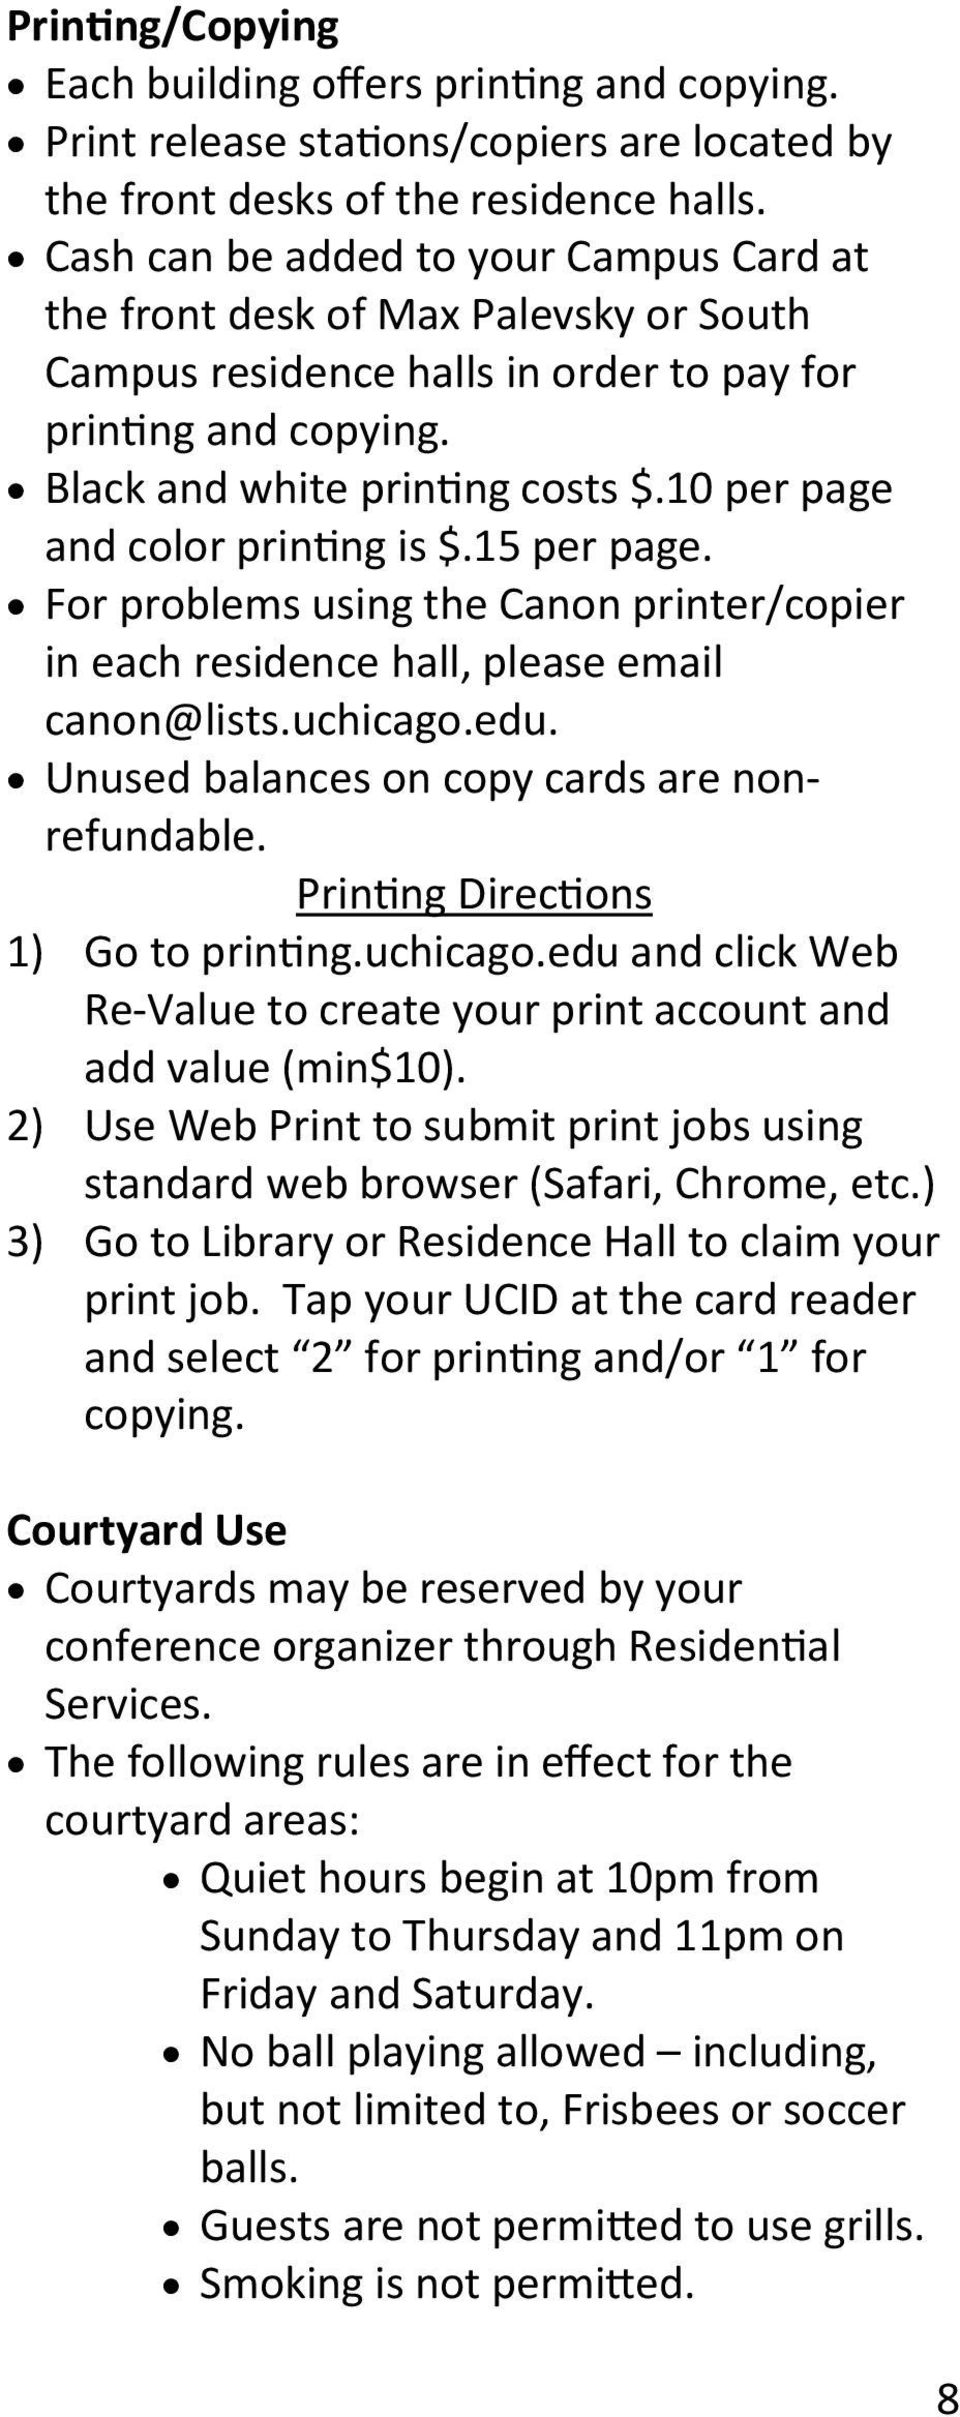 10 per page and color printing is $.15 per page. For problems using the Canon printer/copier in each residence hall, please email canon@lists.uchicago.edu.